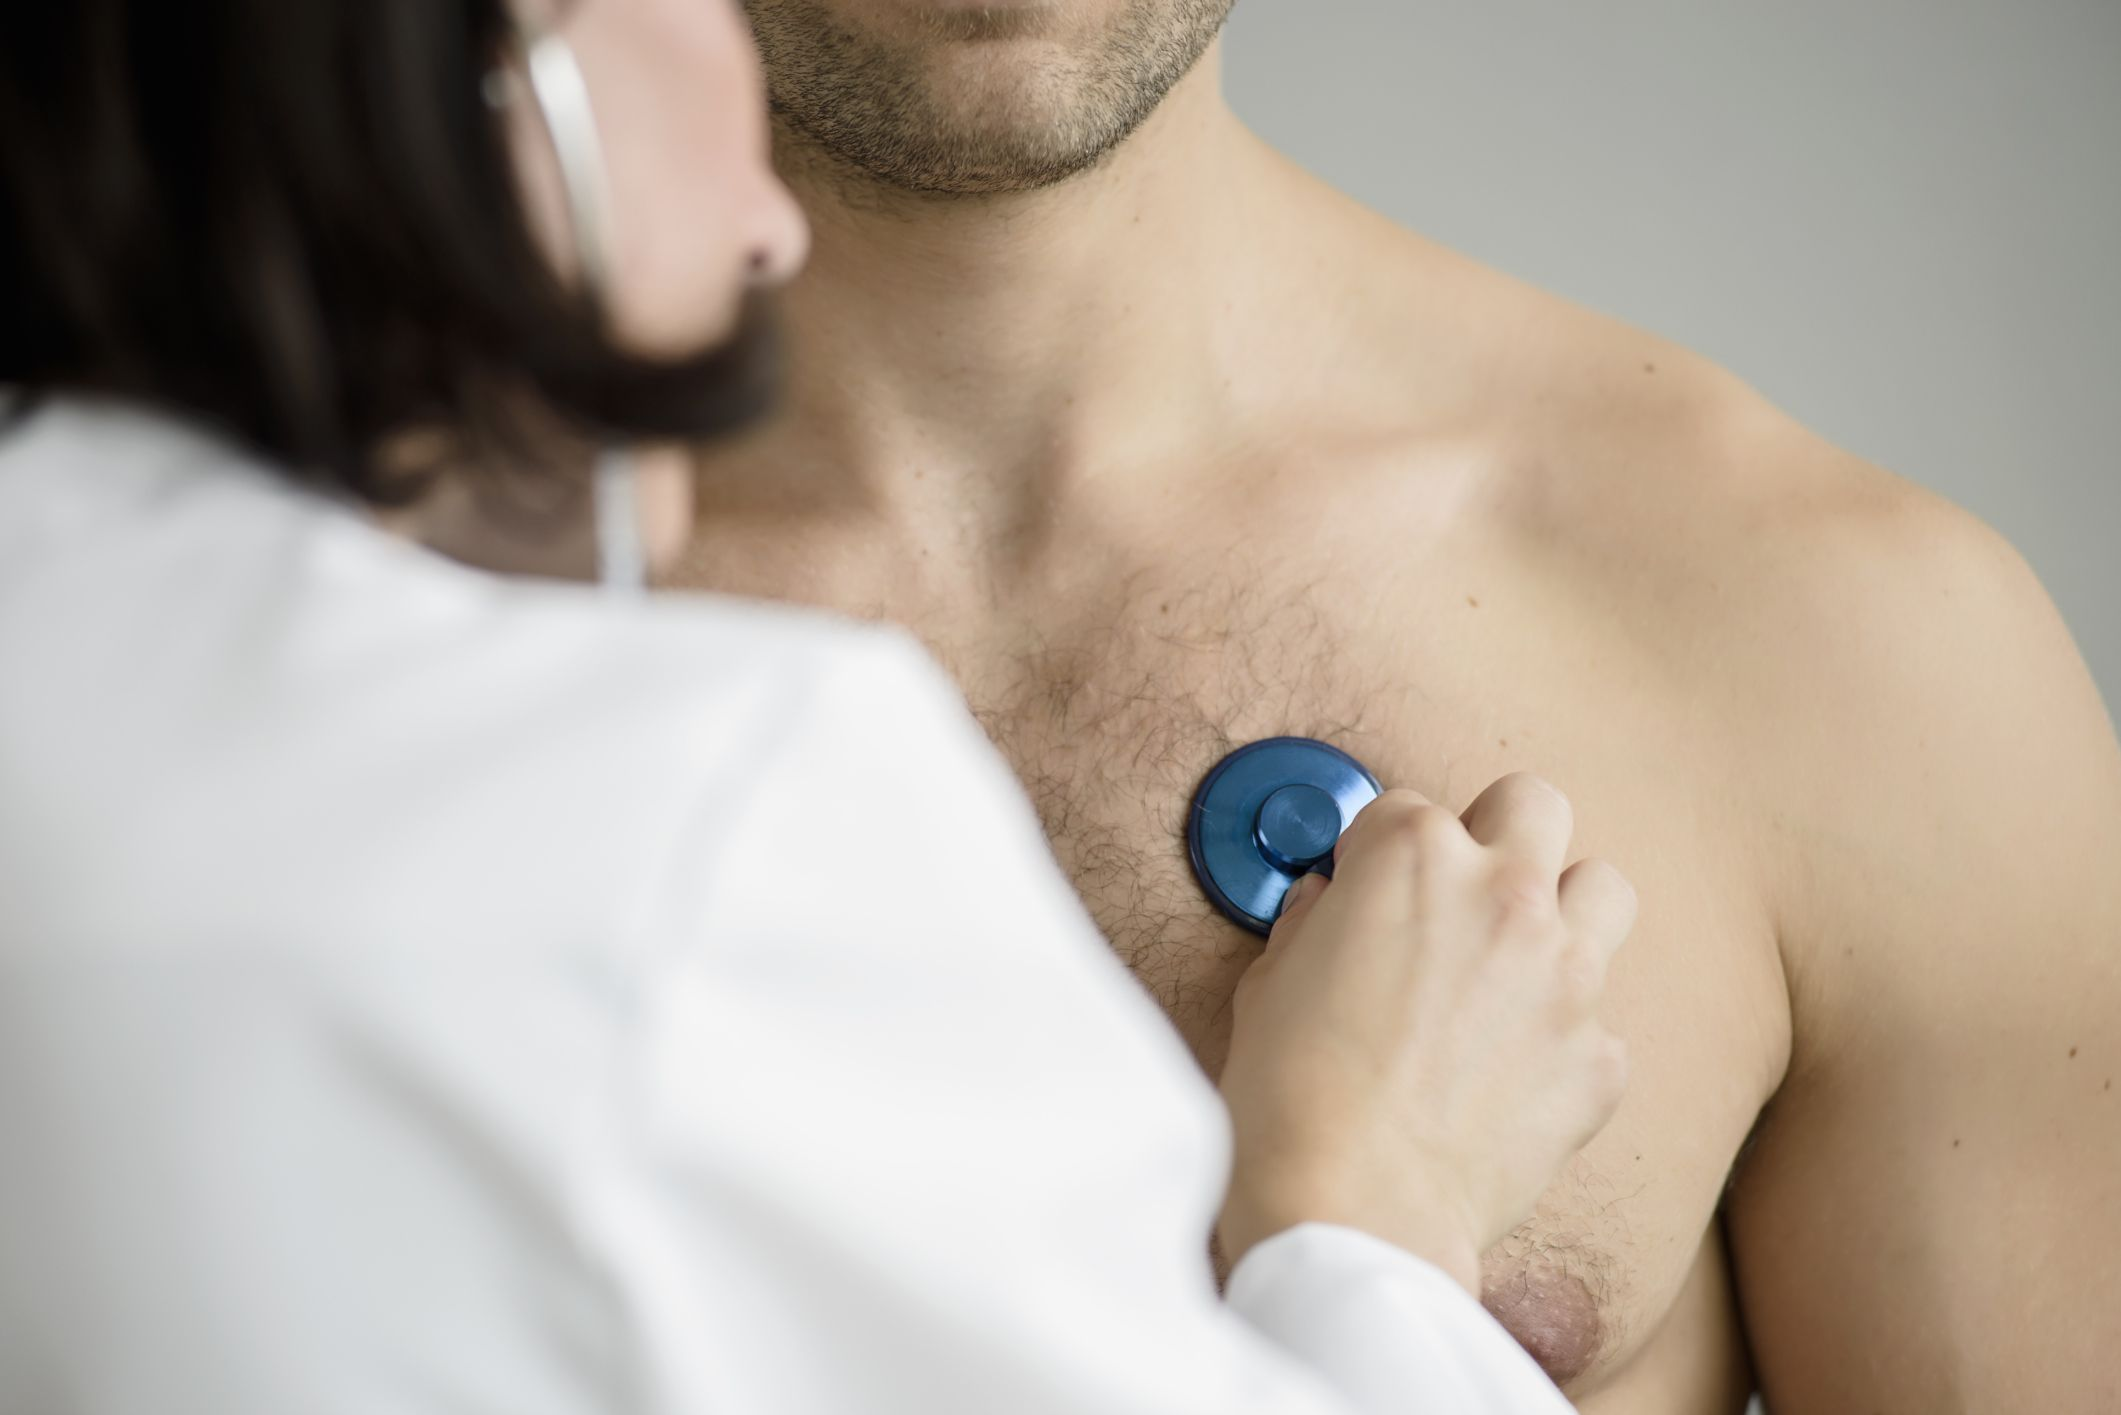 The Alarming Reason You Should Be Concerned That Male Breast Cancer is On  the Rise